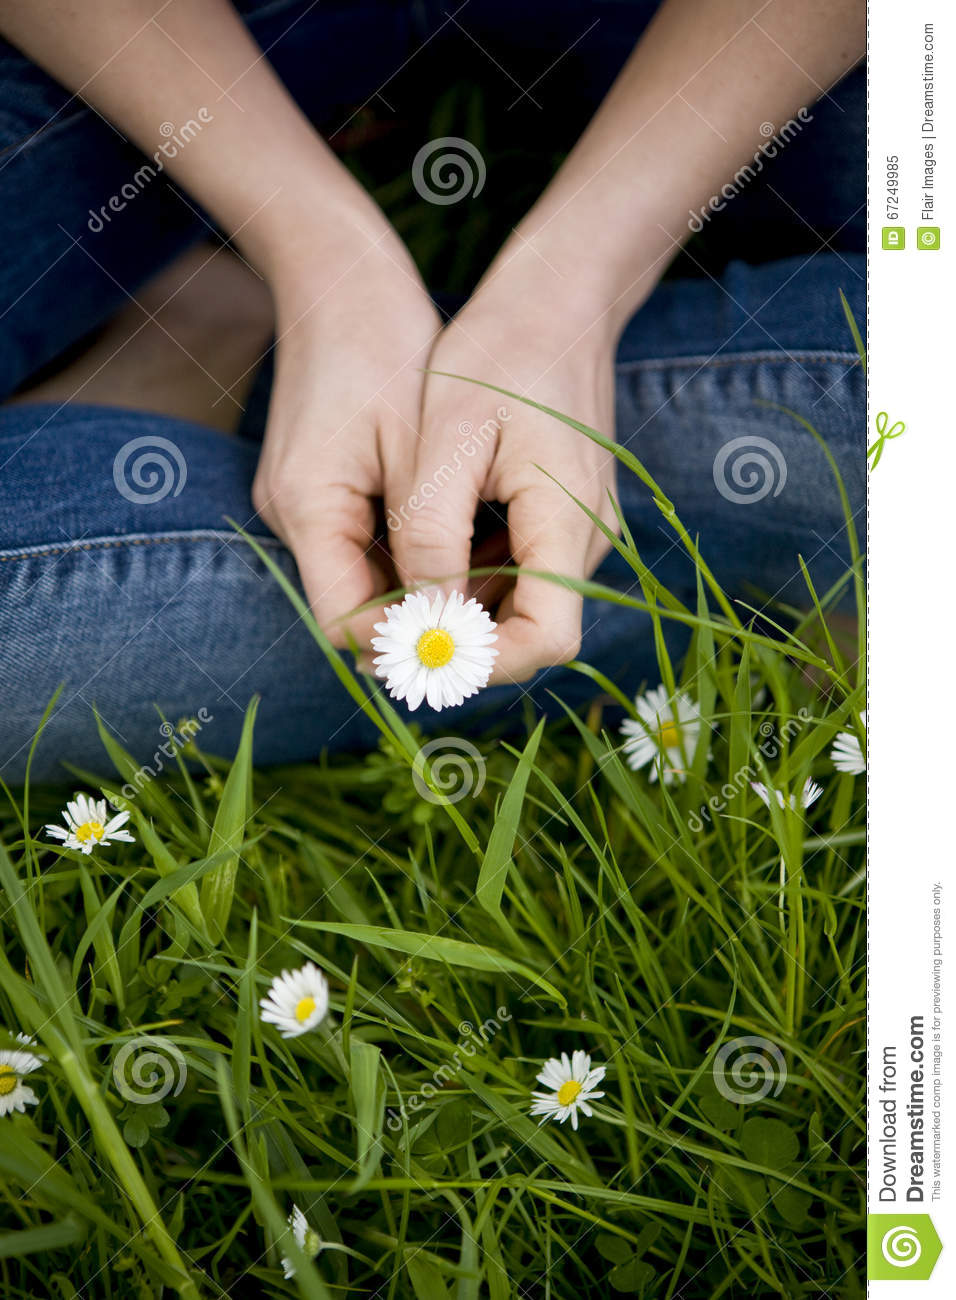 Close-up of a woman holding a daisy